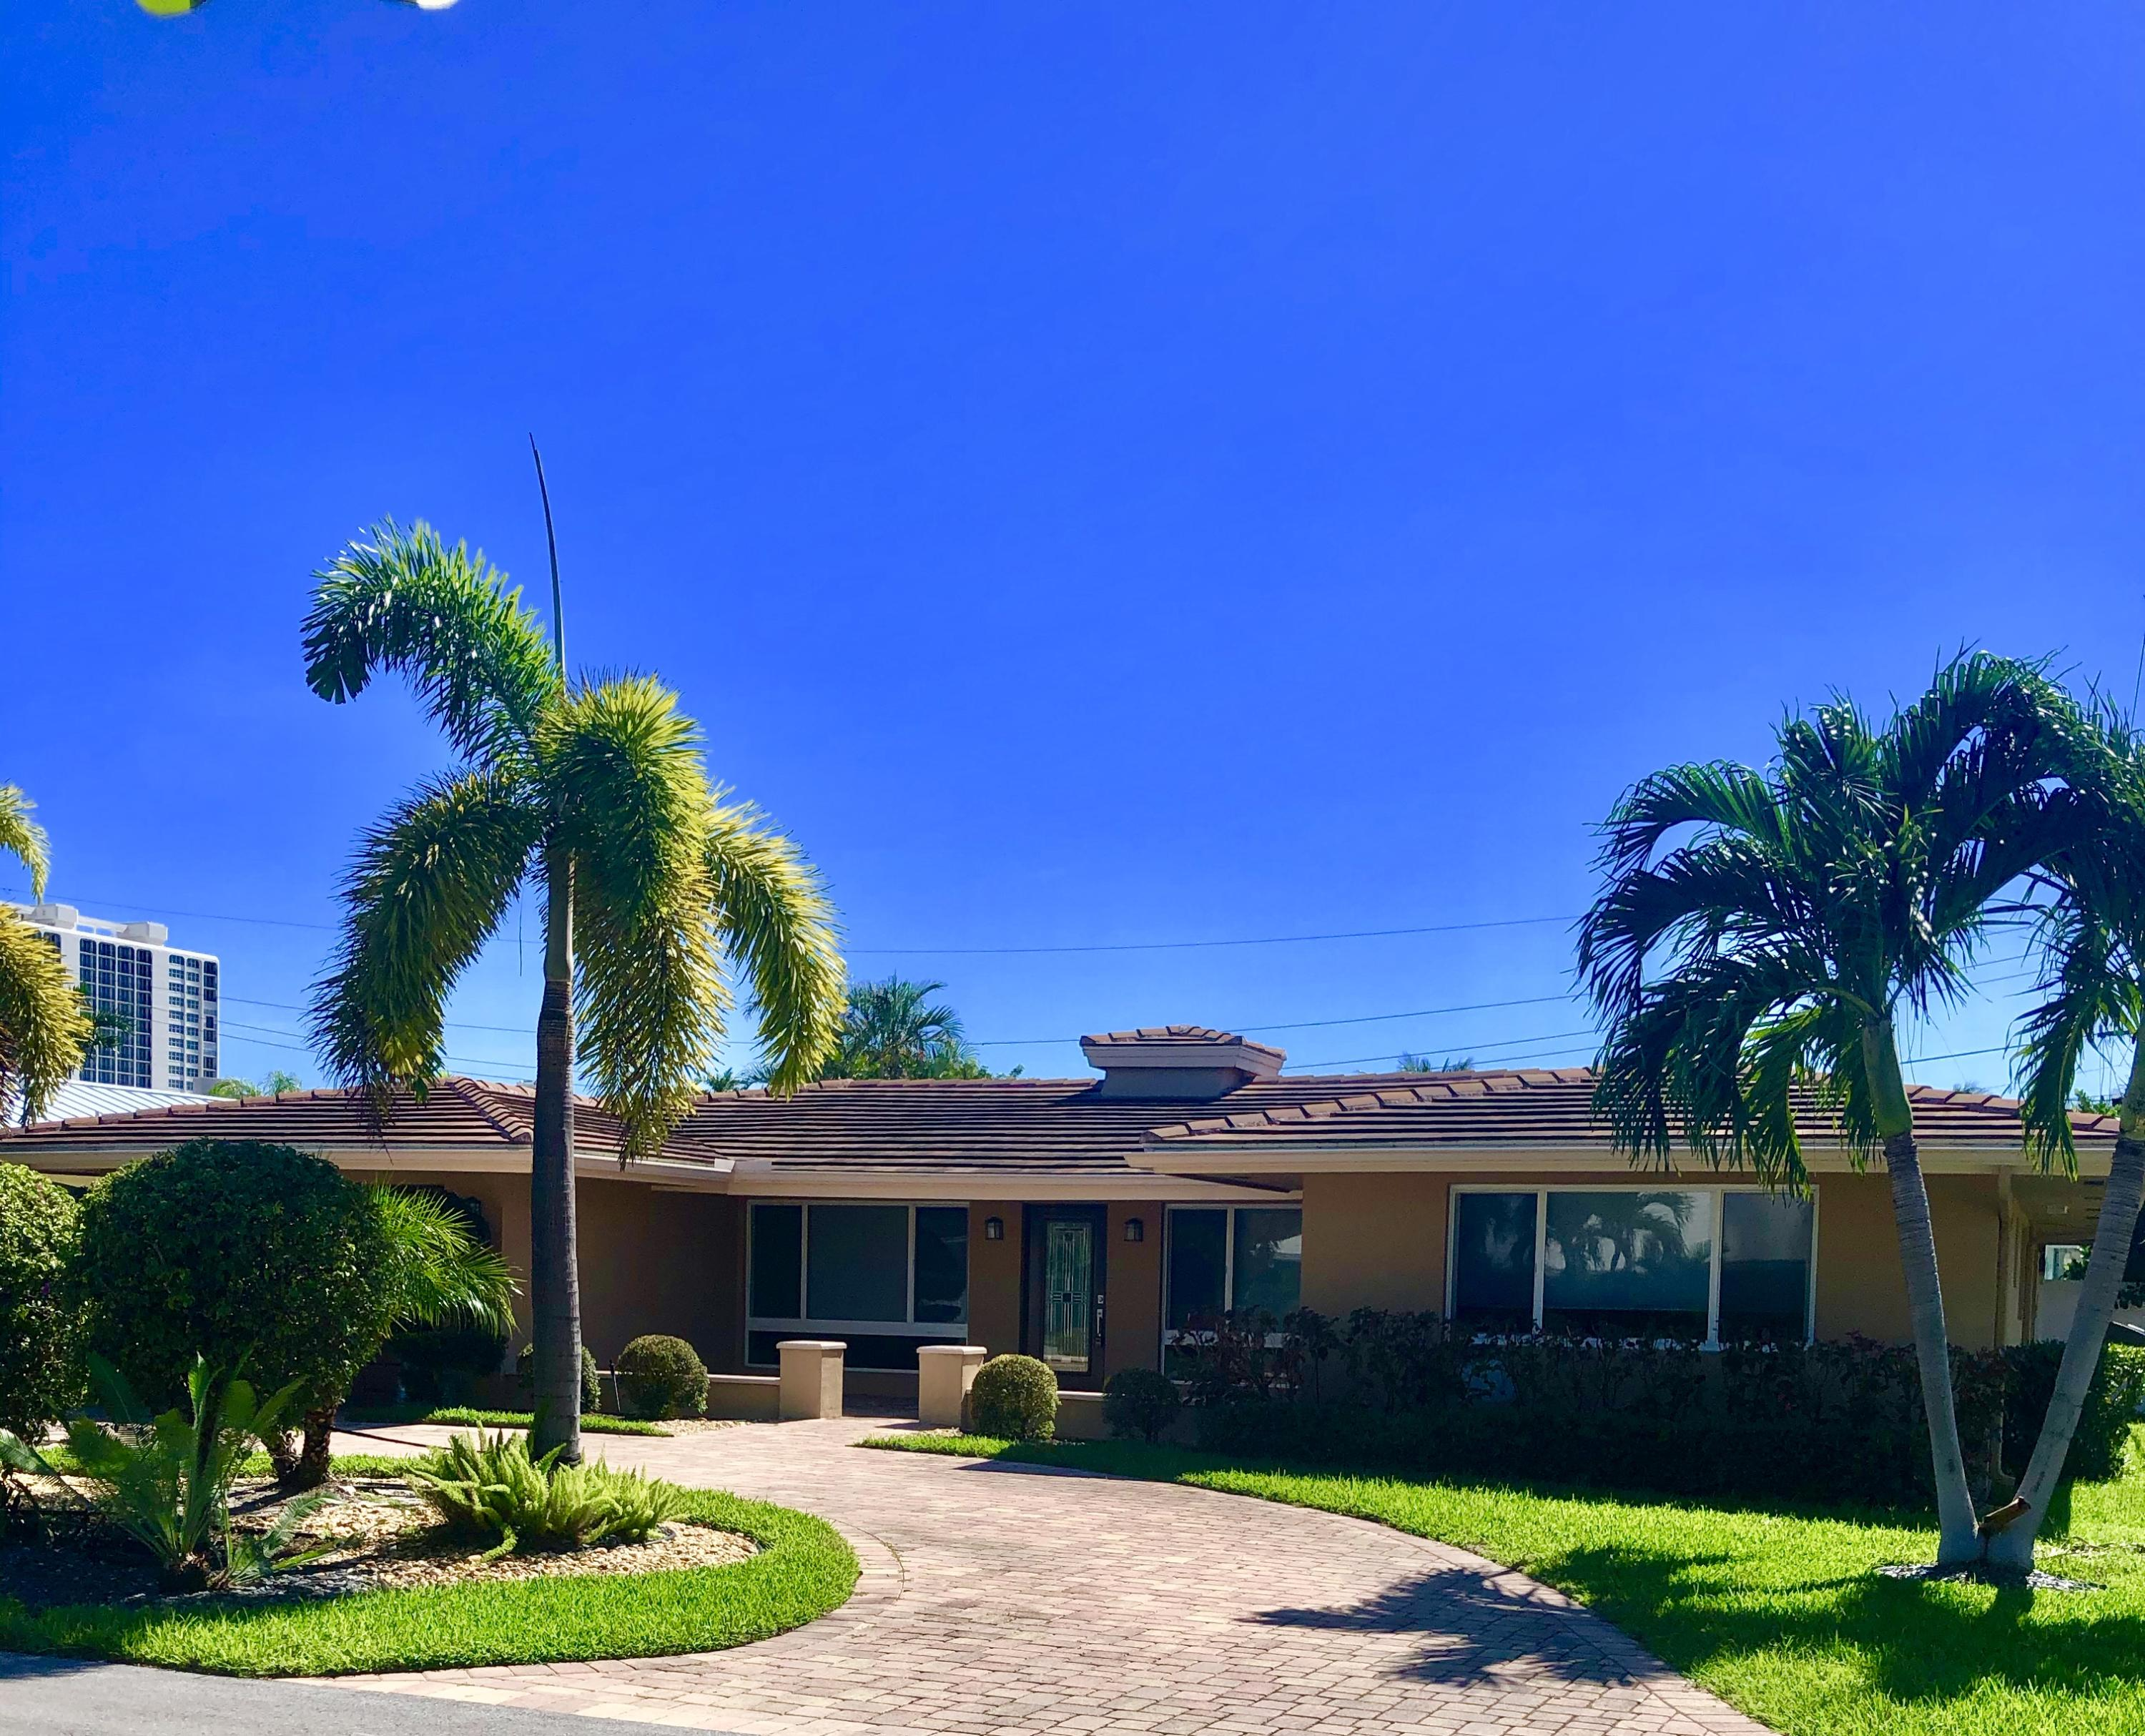 756 Barcelona Drive, Boca Raton, Florida 33432, 3 Bedrooms Bedrooms, ,2 BathroomsBathrooms,Rental,For Rent,Barcelona,RX-10569124